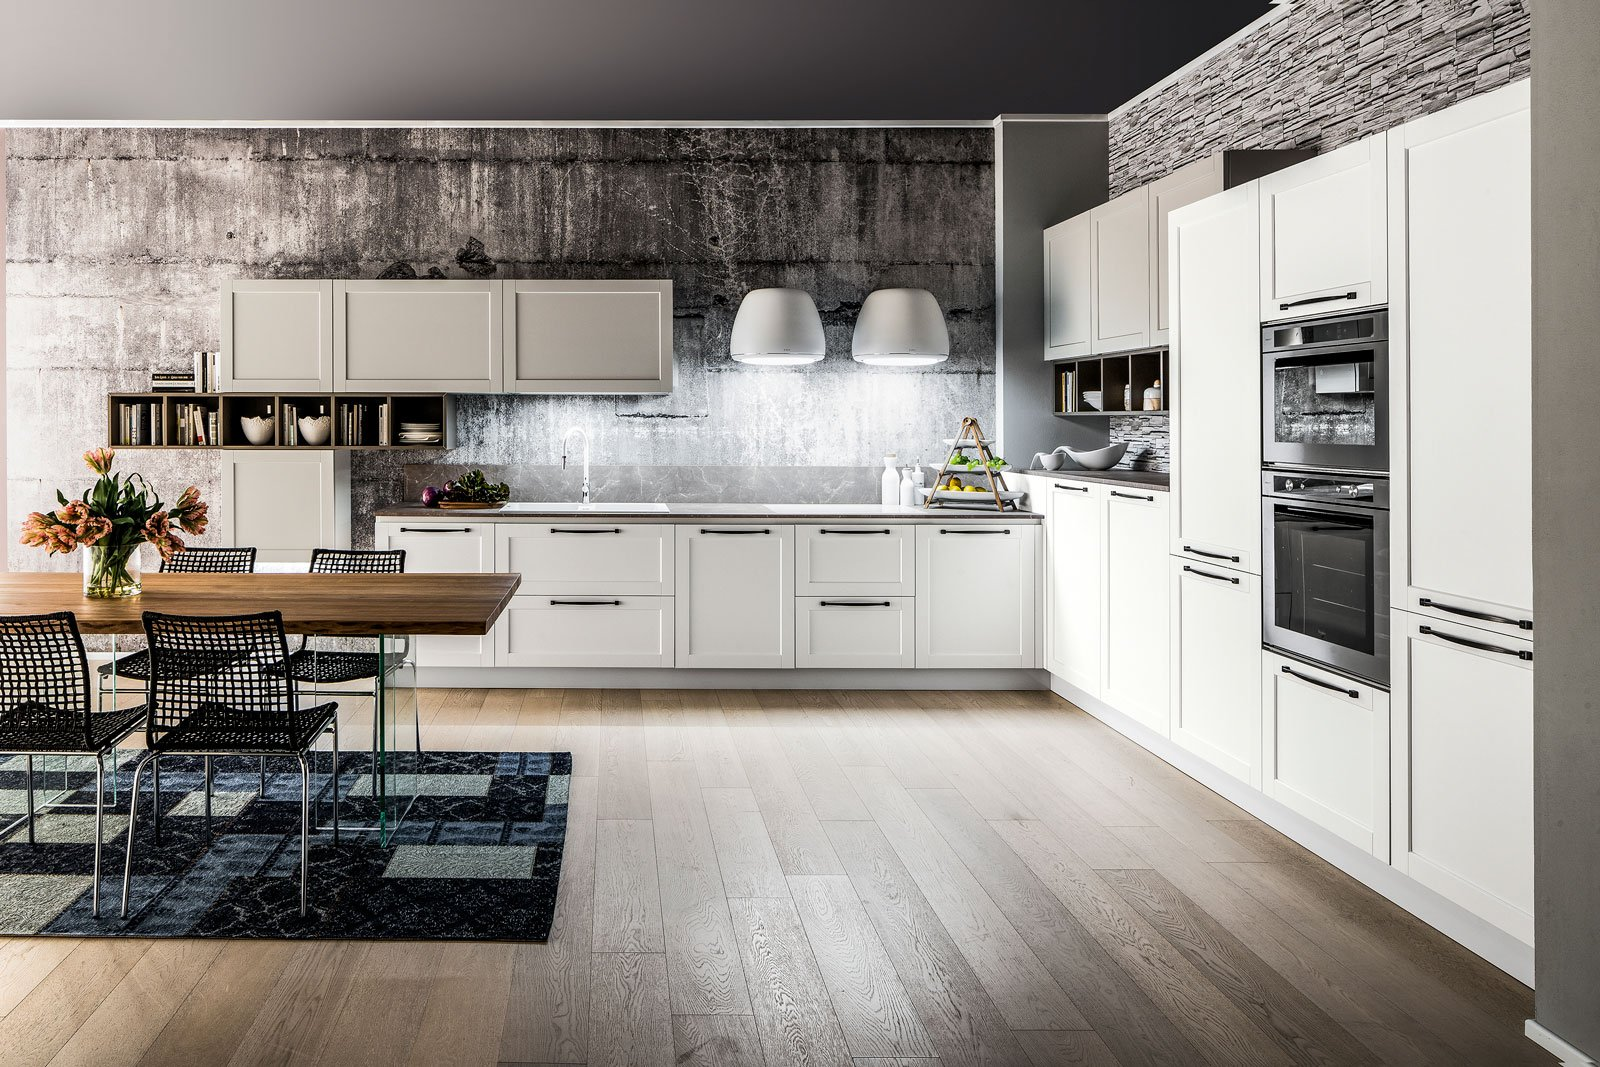 Demode cucine opinioni aster with demode cucine opinioni - Cucine valcucine opinioni ...